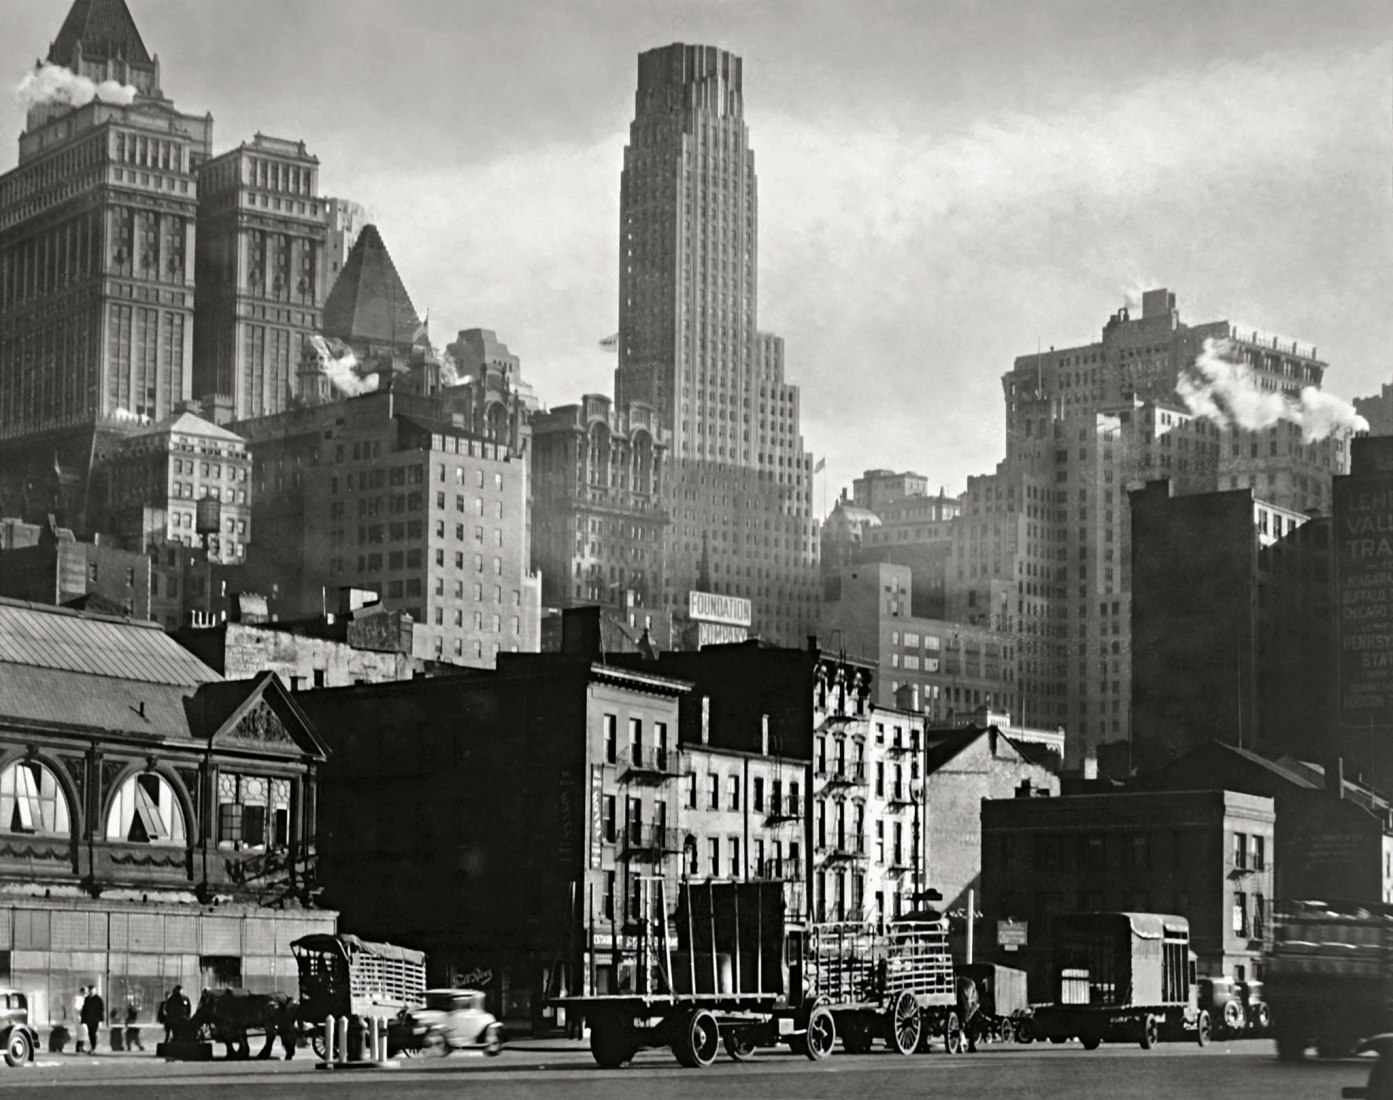 Berenice Abbott. West Street, 1932. 19,1 × 24,3 cm. International Center of Photography, Purchase, with funds provided by the National Endowment for the Arts and the Lois and Bruce Zenkel Purchase Fund, 1983 (388.1983). © Getty Images/Berenice Abbott.